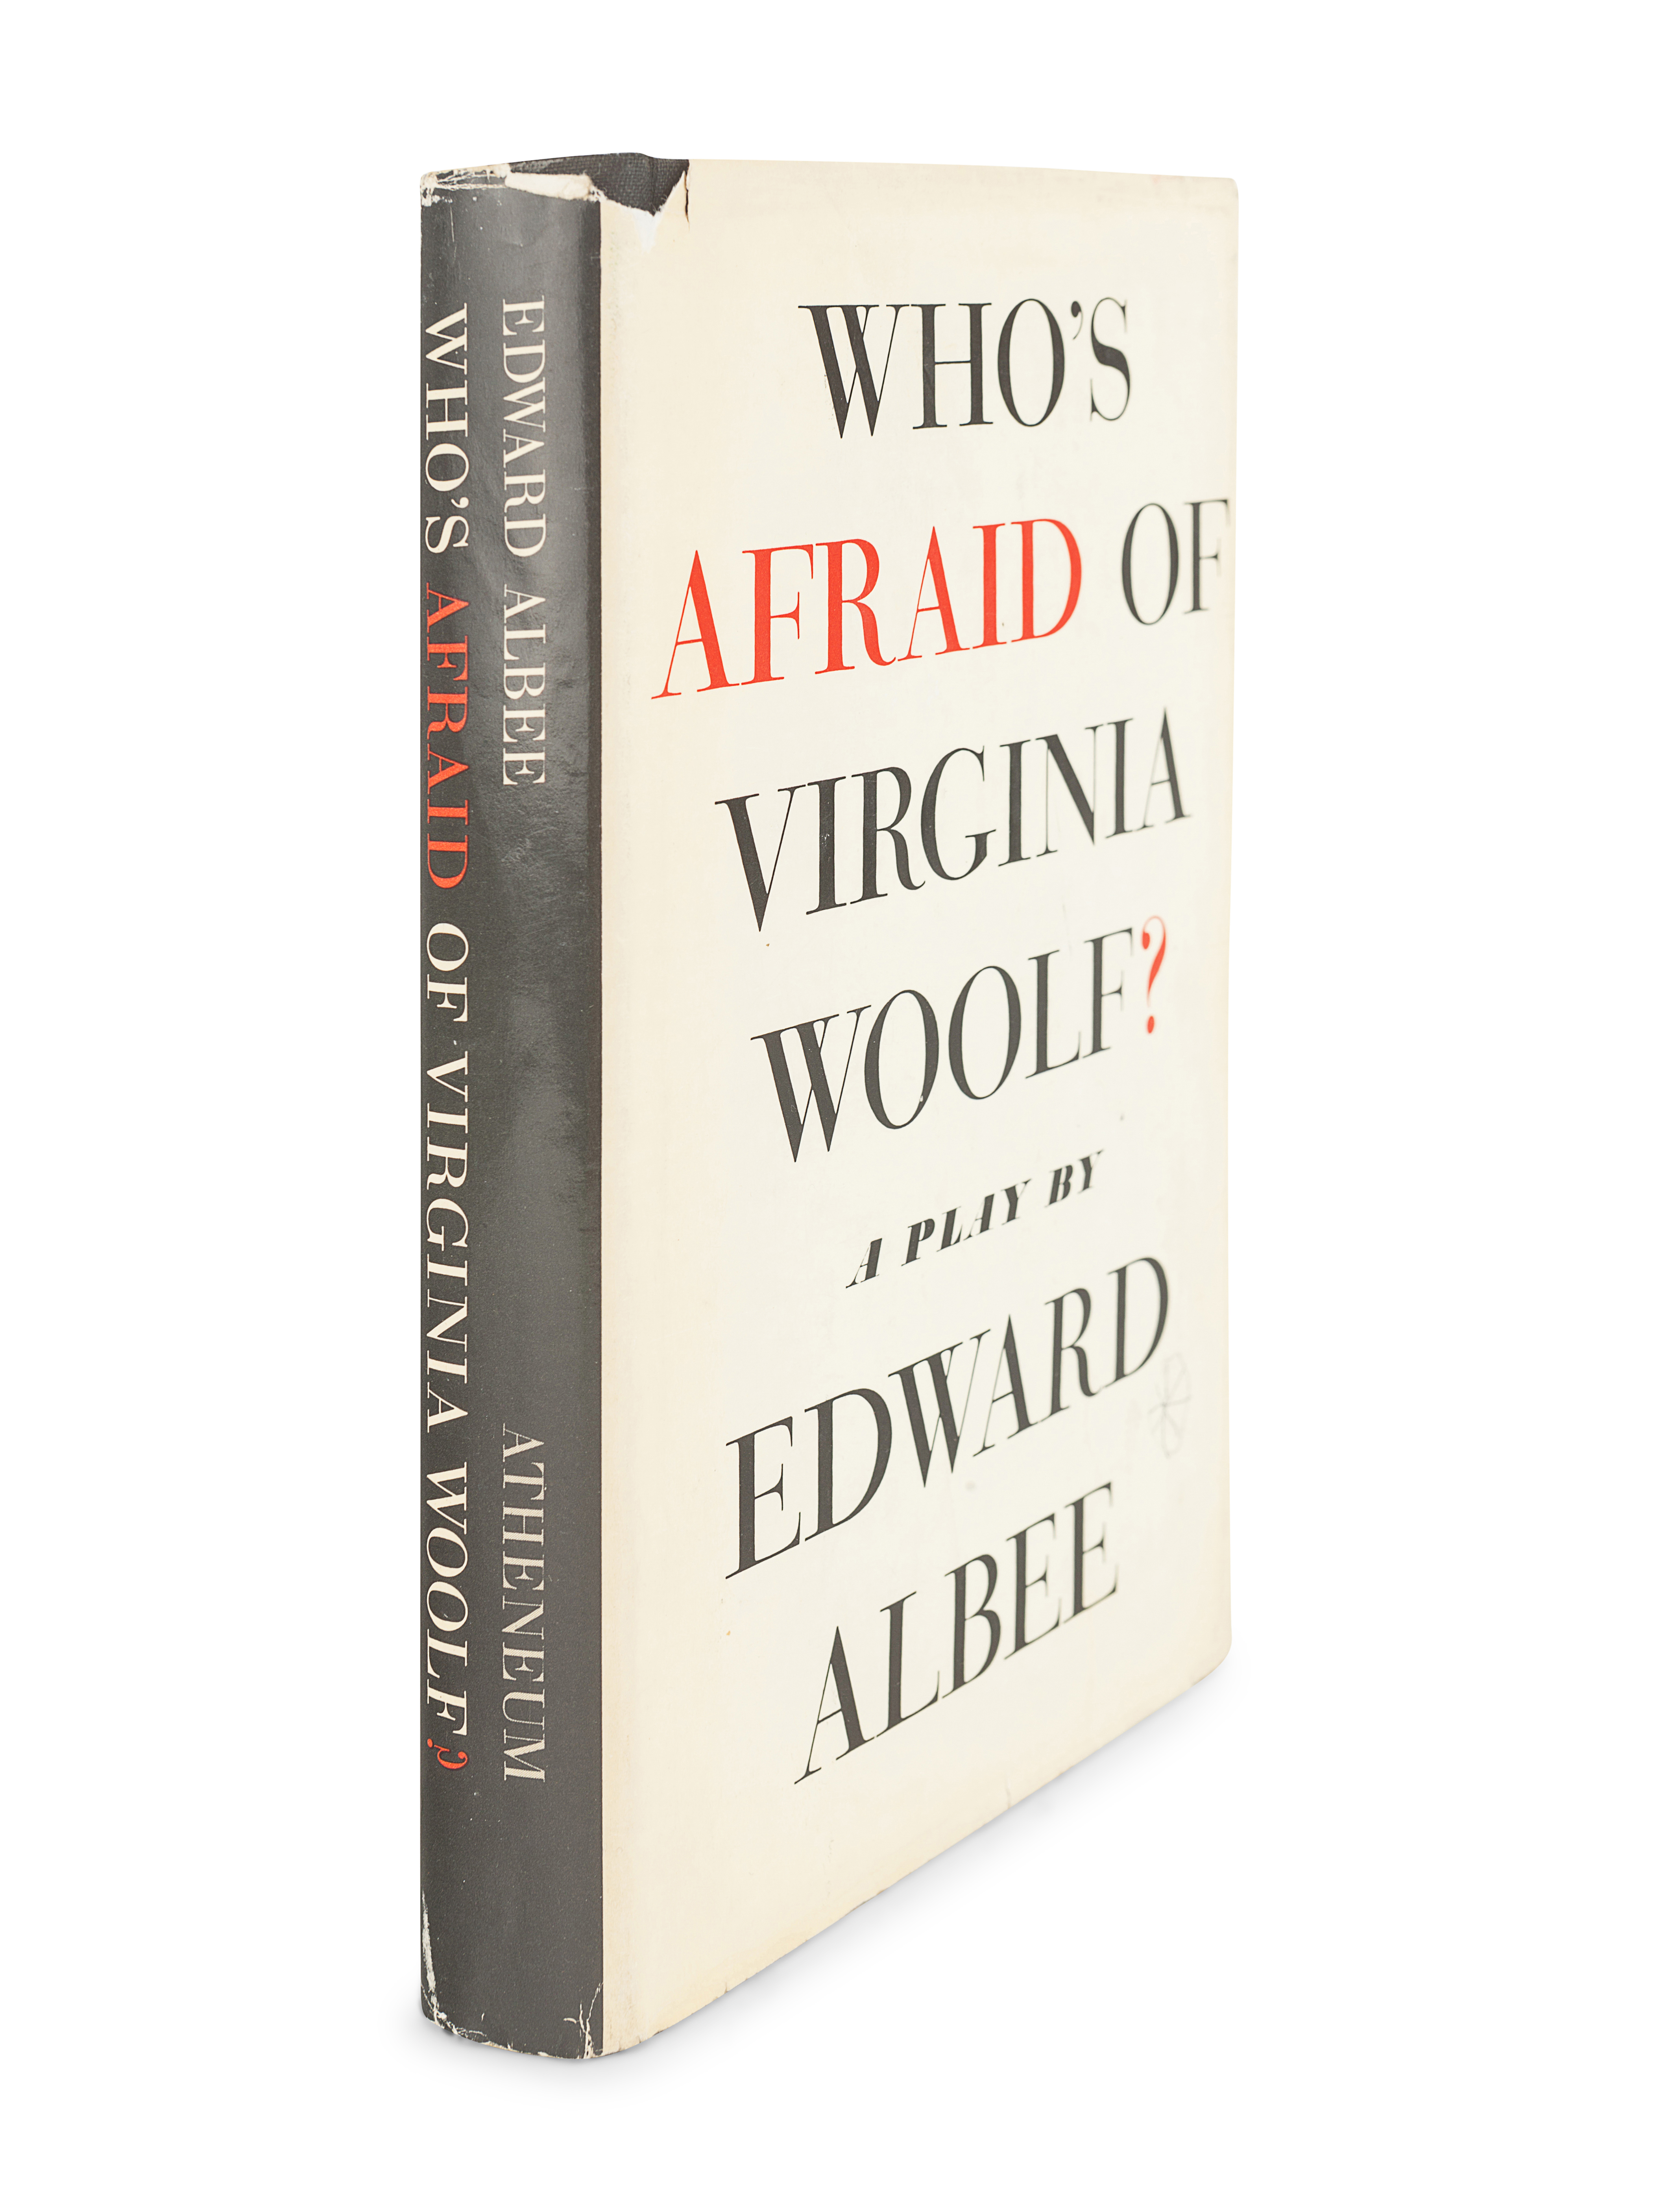 ALBEE, Edward (1928-2016). Who's Afraid of Virginia Woolf? New York: Atheneum, 1962. - Image 3 of 3